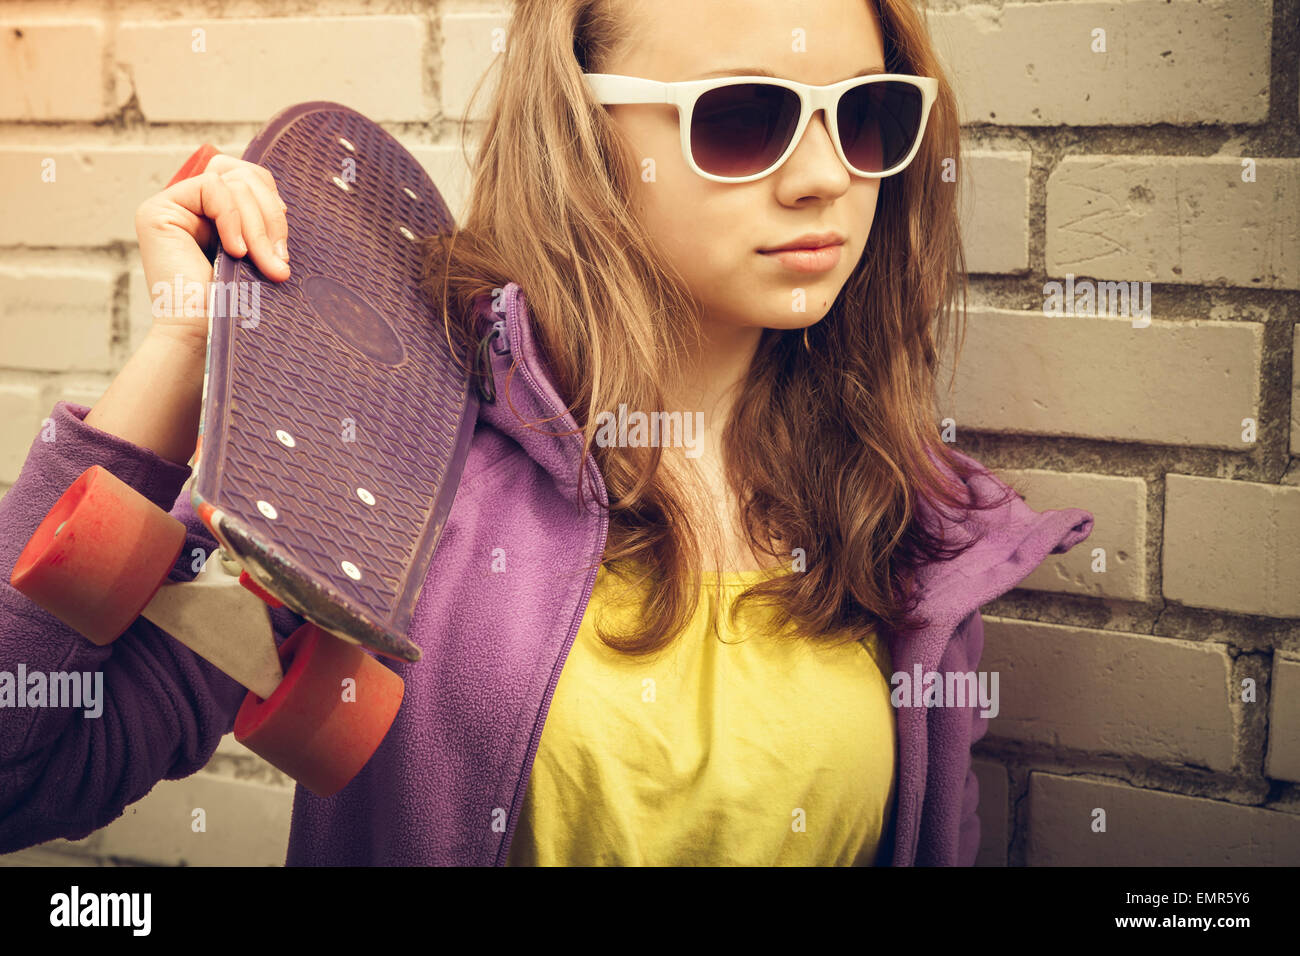 Of blond teen holding sunglasses